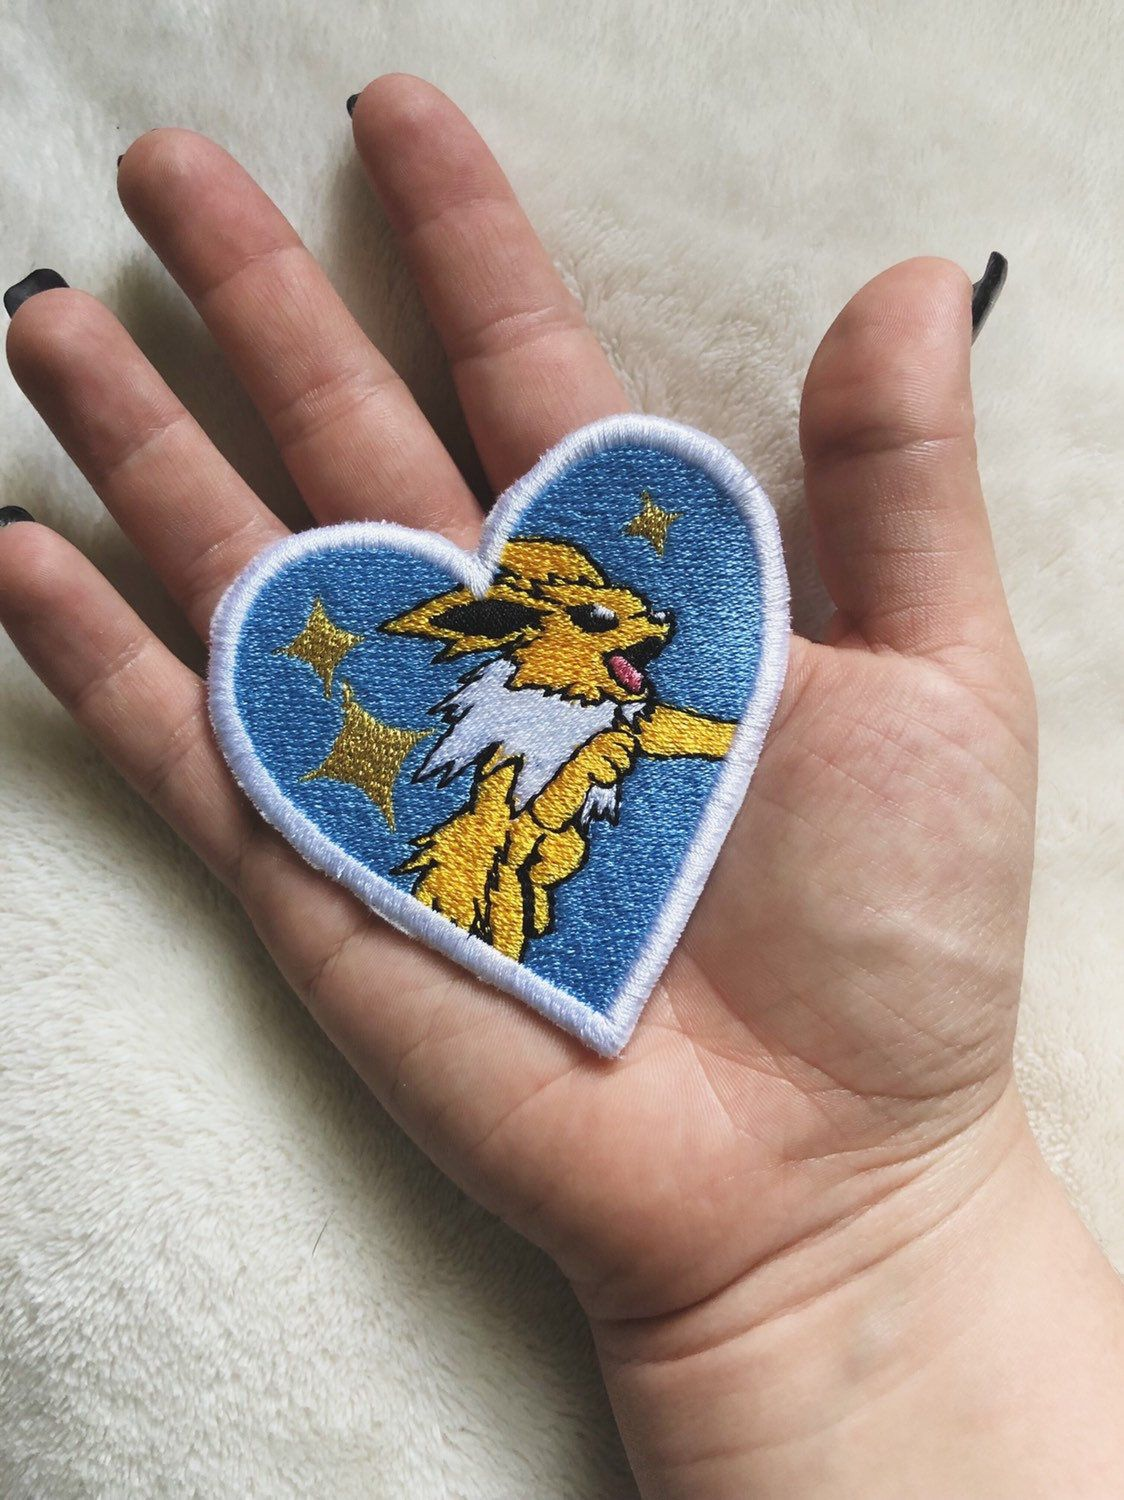 Eeveelution Patches made by CatandCrow -